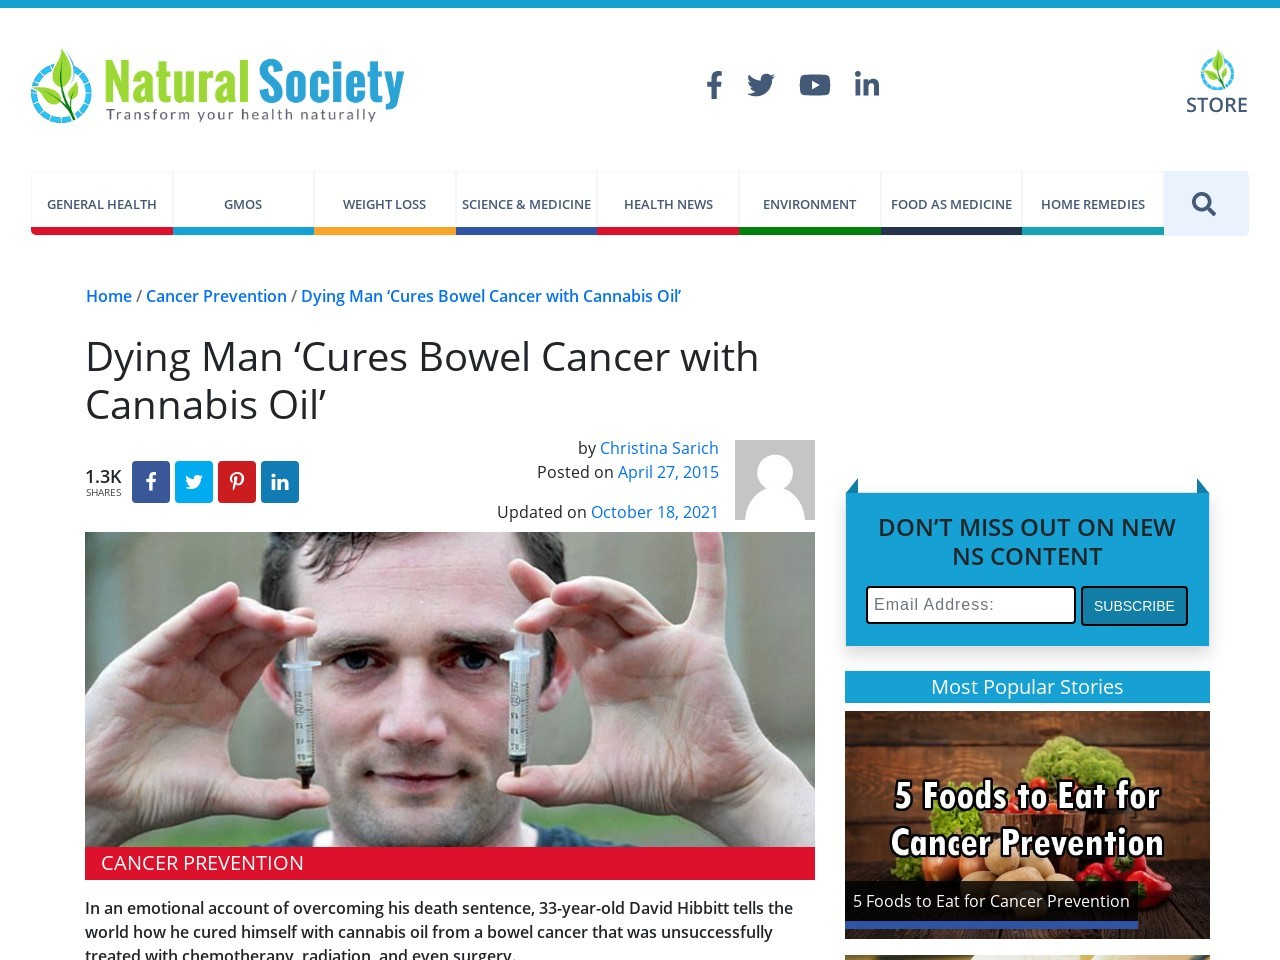 Dying Man 'Cures Bowel Cancer with Cannabis Oil'